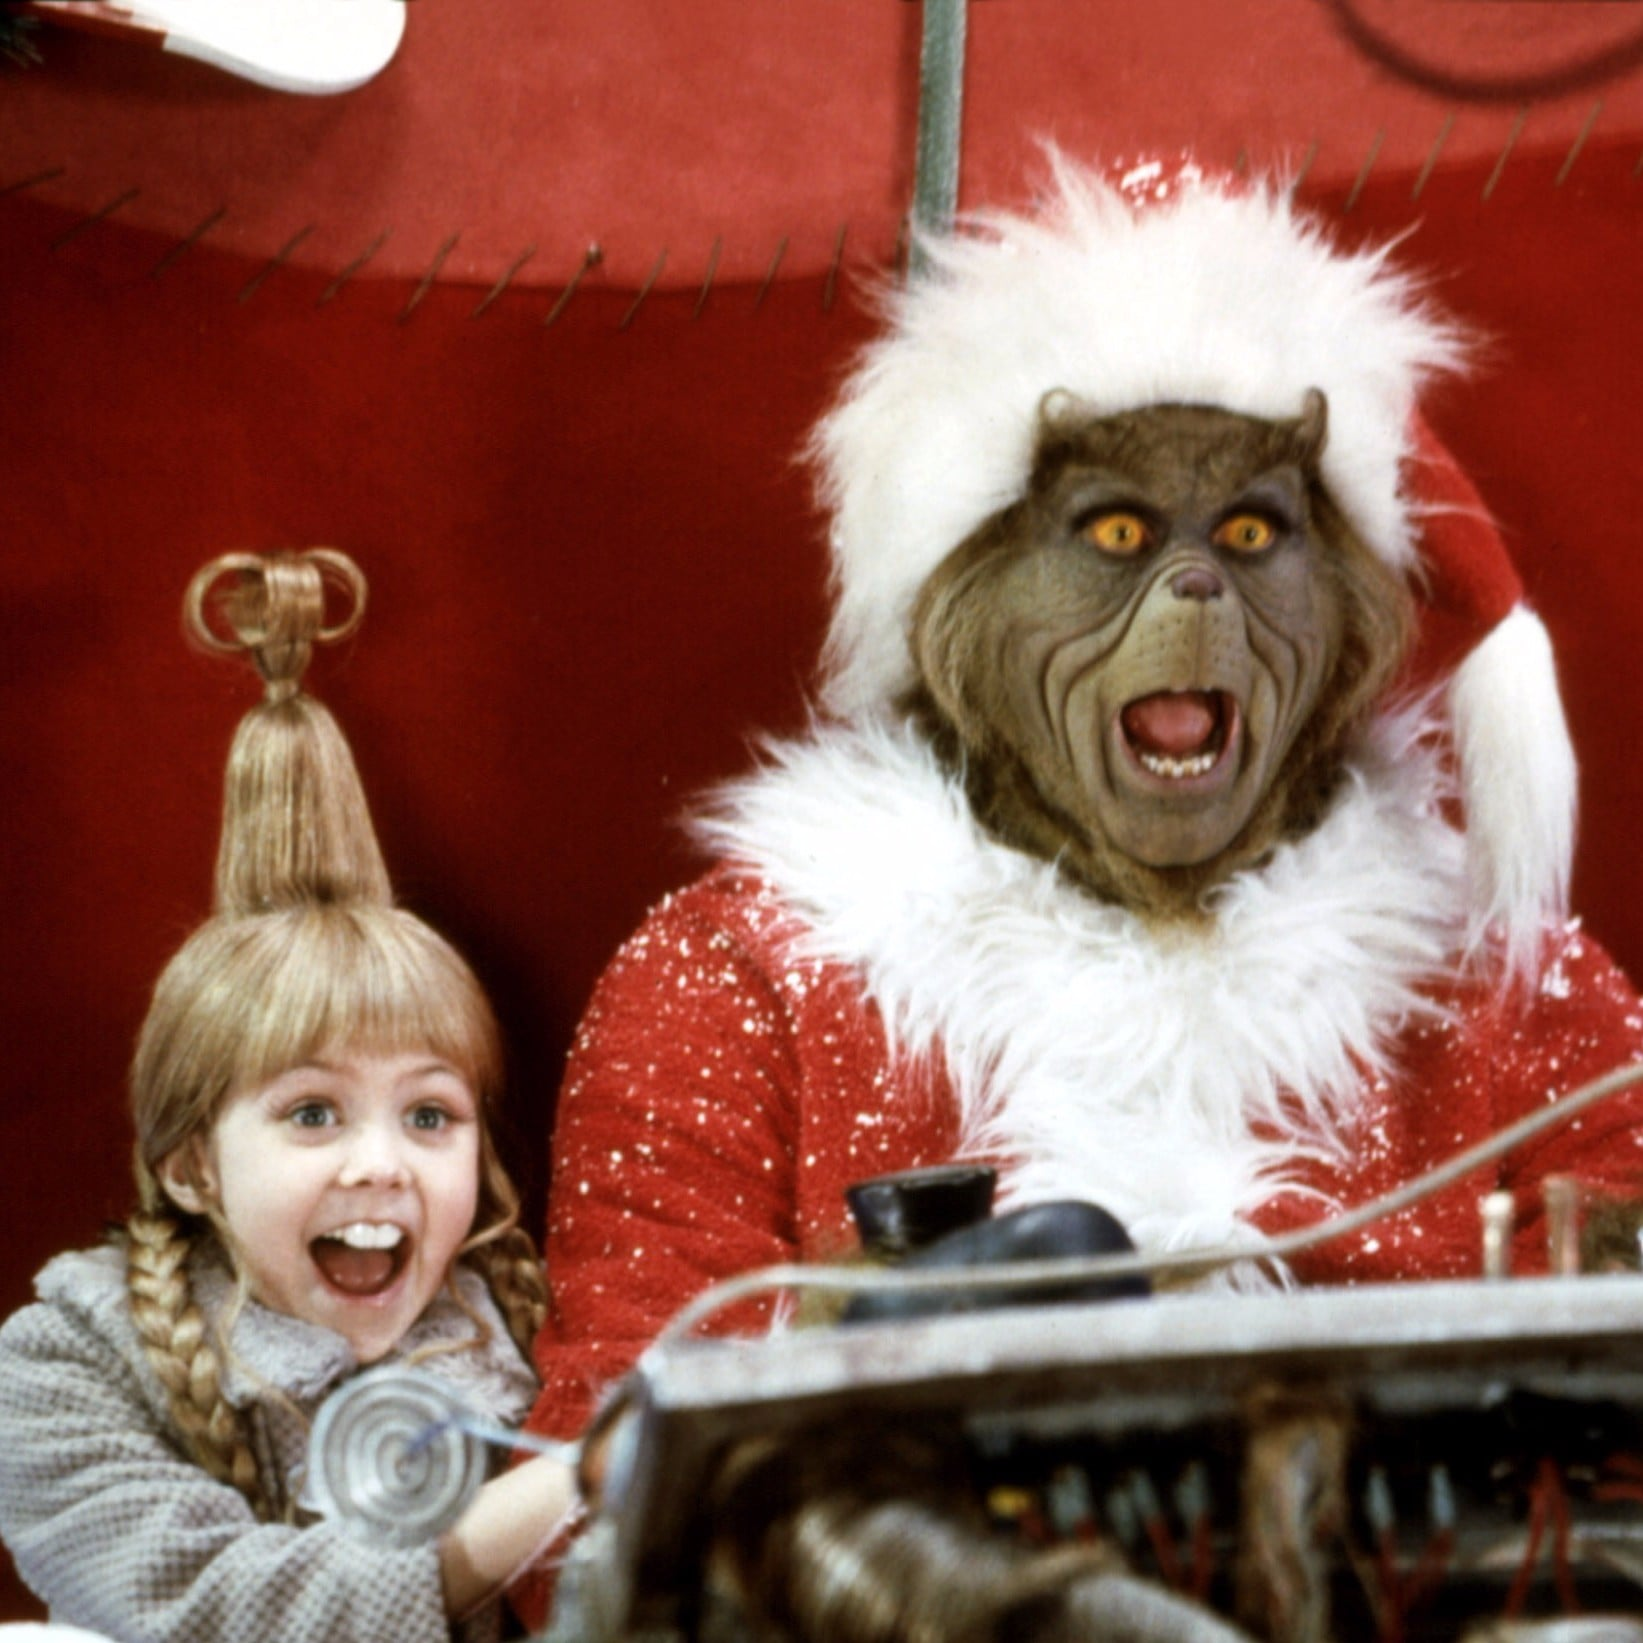 Best Quotes From How the Grinch Stole Christmas | POPSUGAR ...